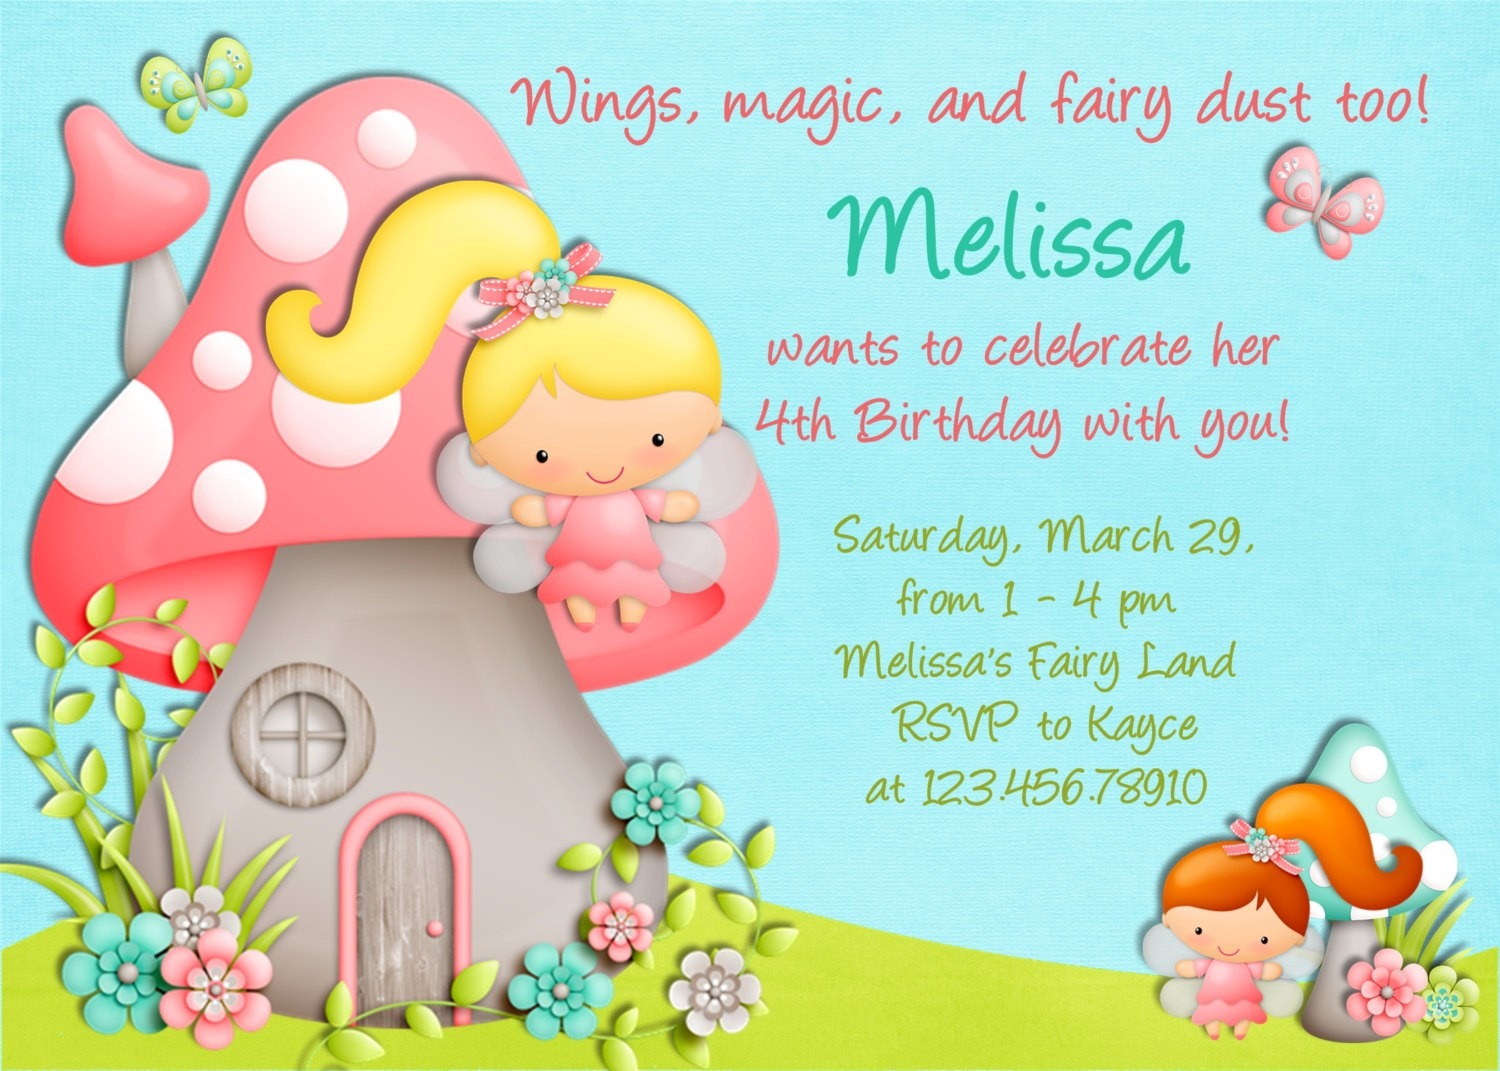 pictures of birthday invitation cards ; invitation-card-birthday-party-best-of-birthday-invitation-cards-gangcraft-net